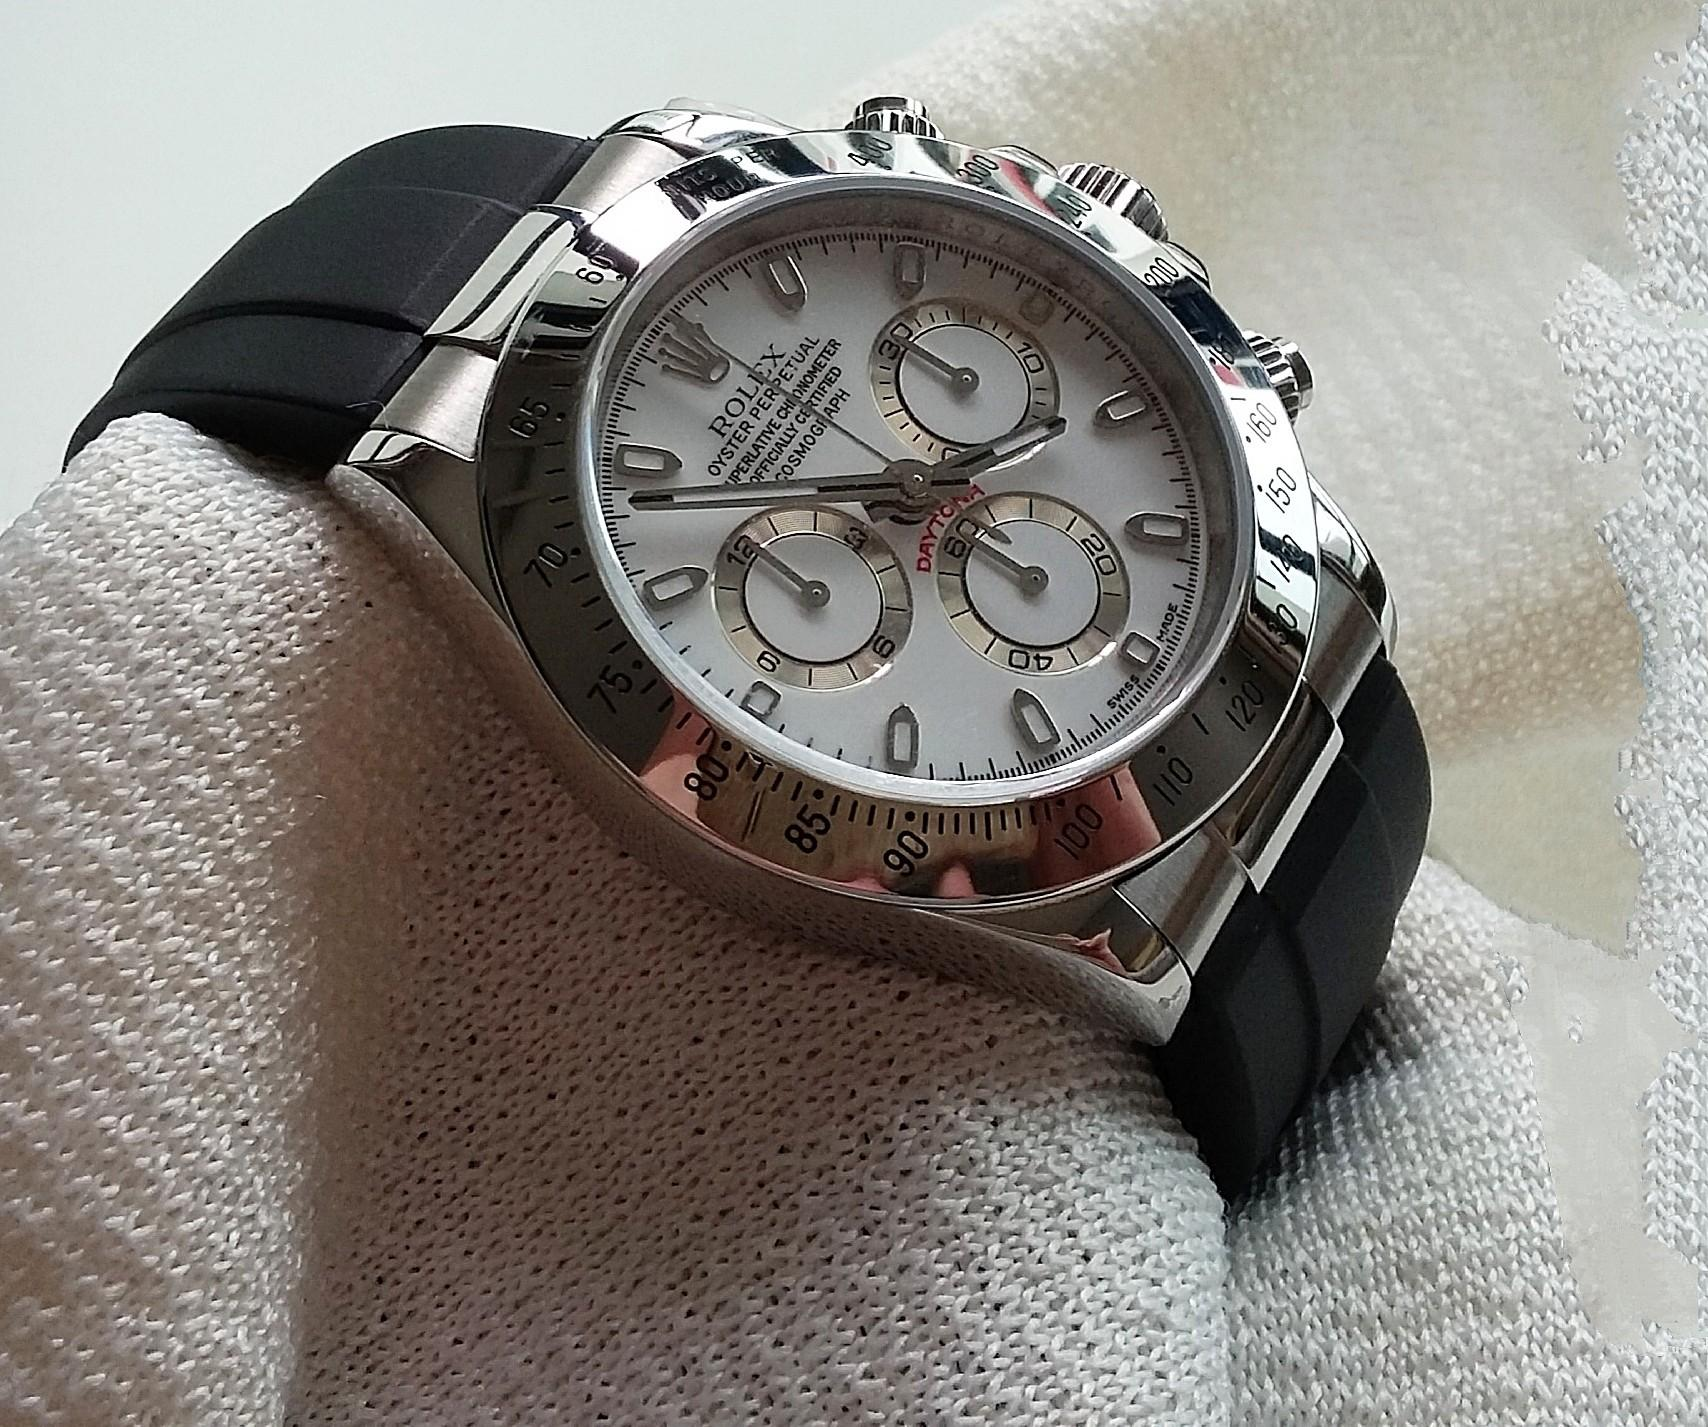 20mm BLACK RUBBER OR LEATHER  STRAP W STAINLESS STEEL ENDLINK & CLASP FIR ROLEX DAYTONA (PRICE INCLUDES FITMENT)